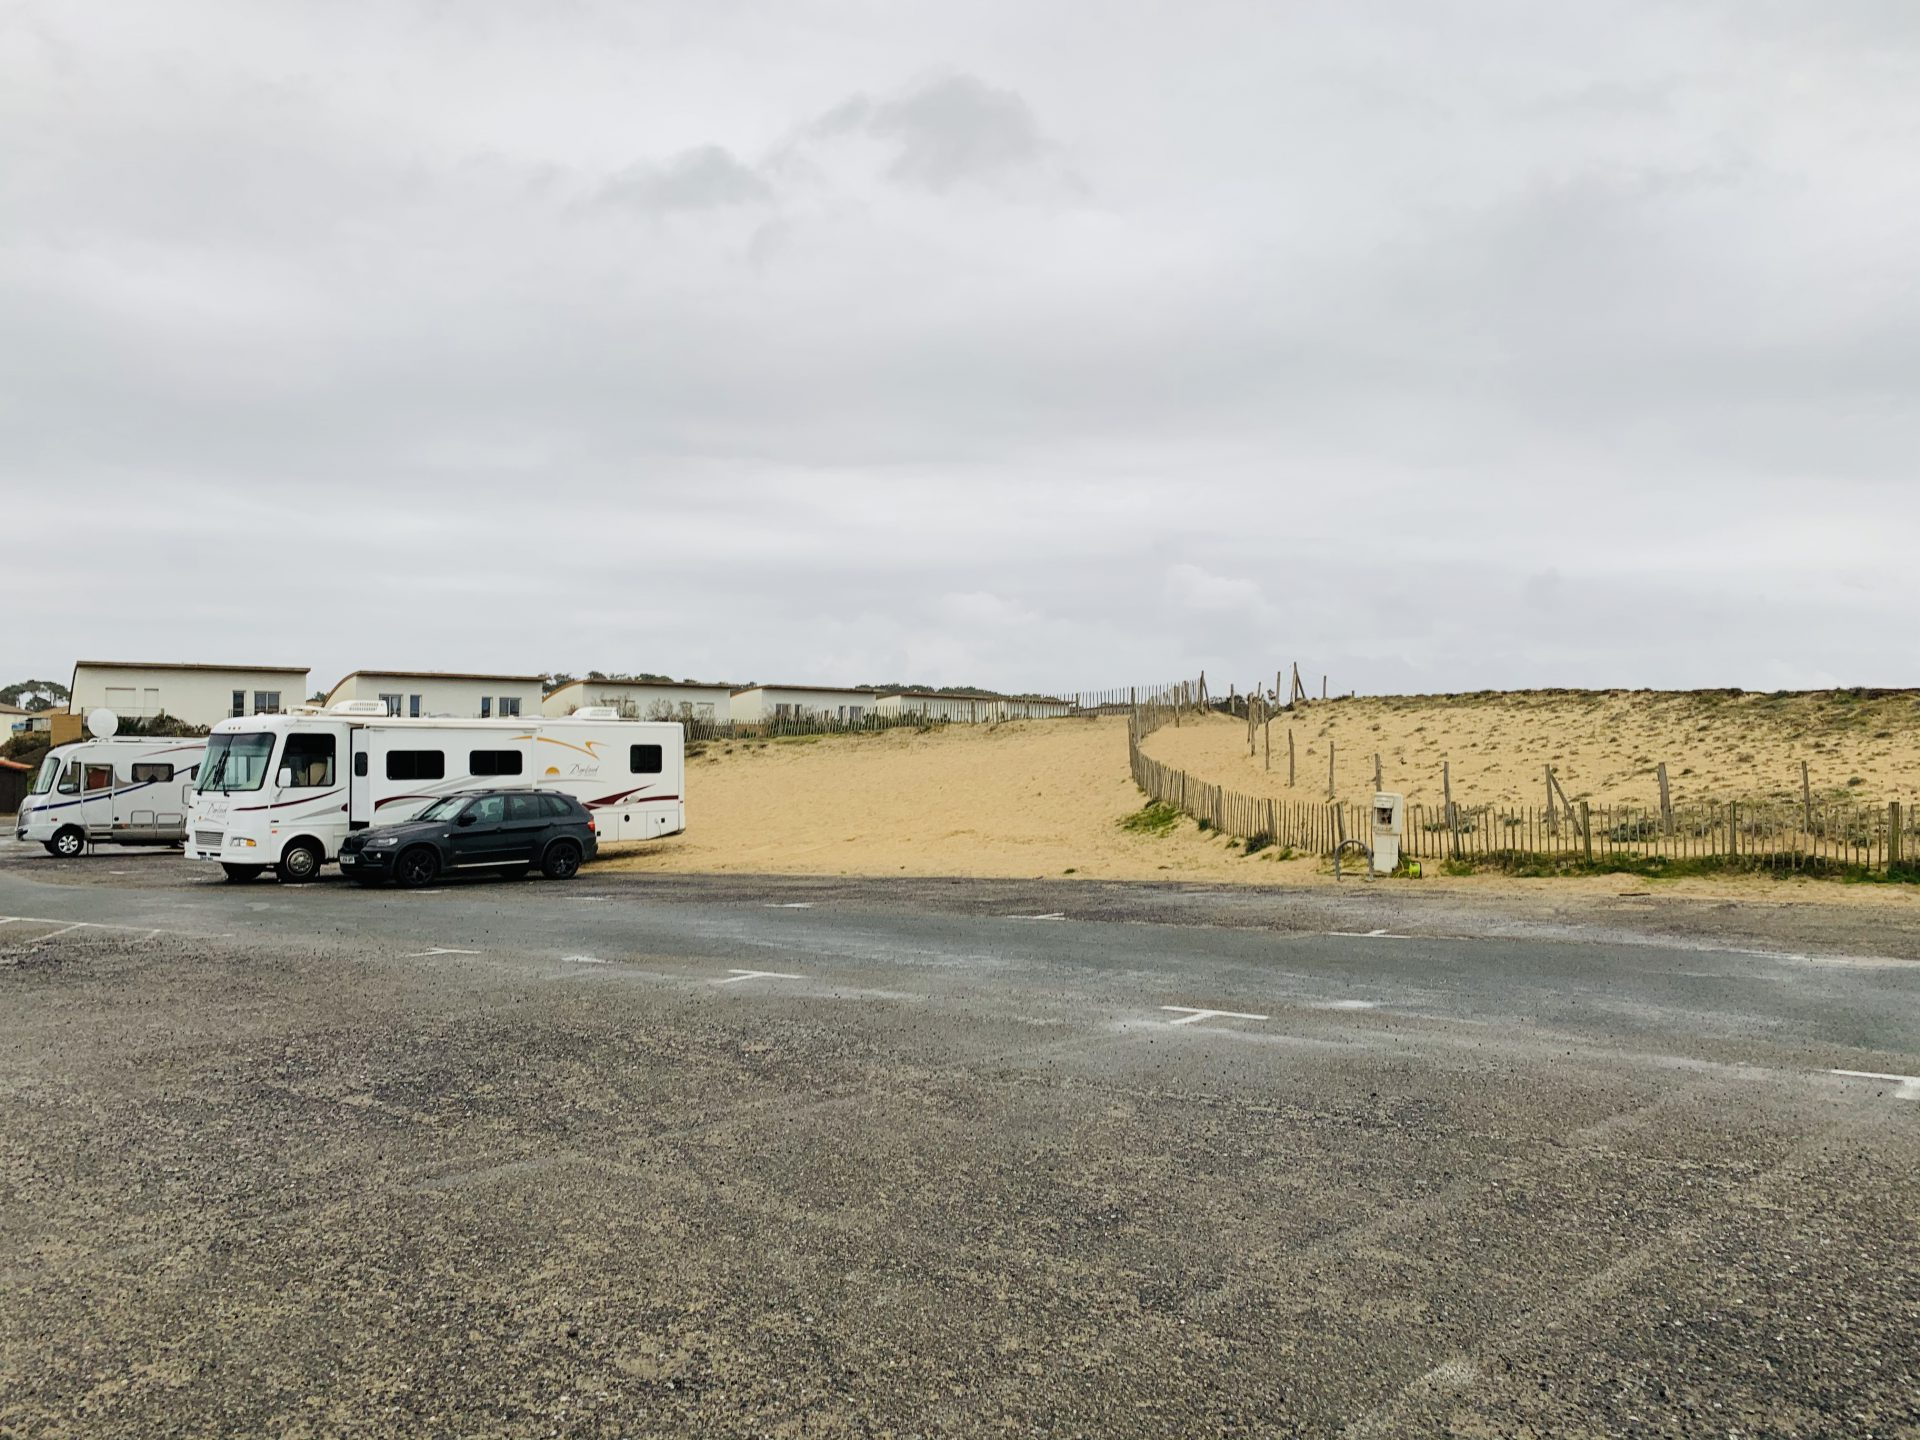 RV and Car Parked in car park at beach